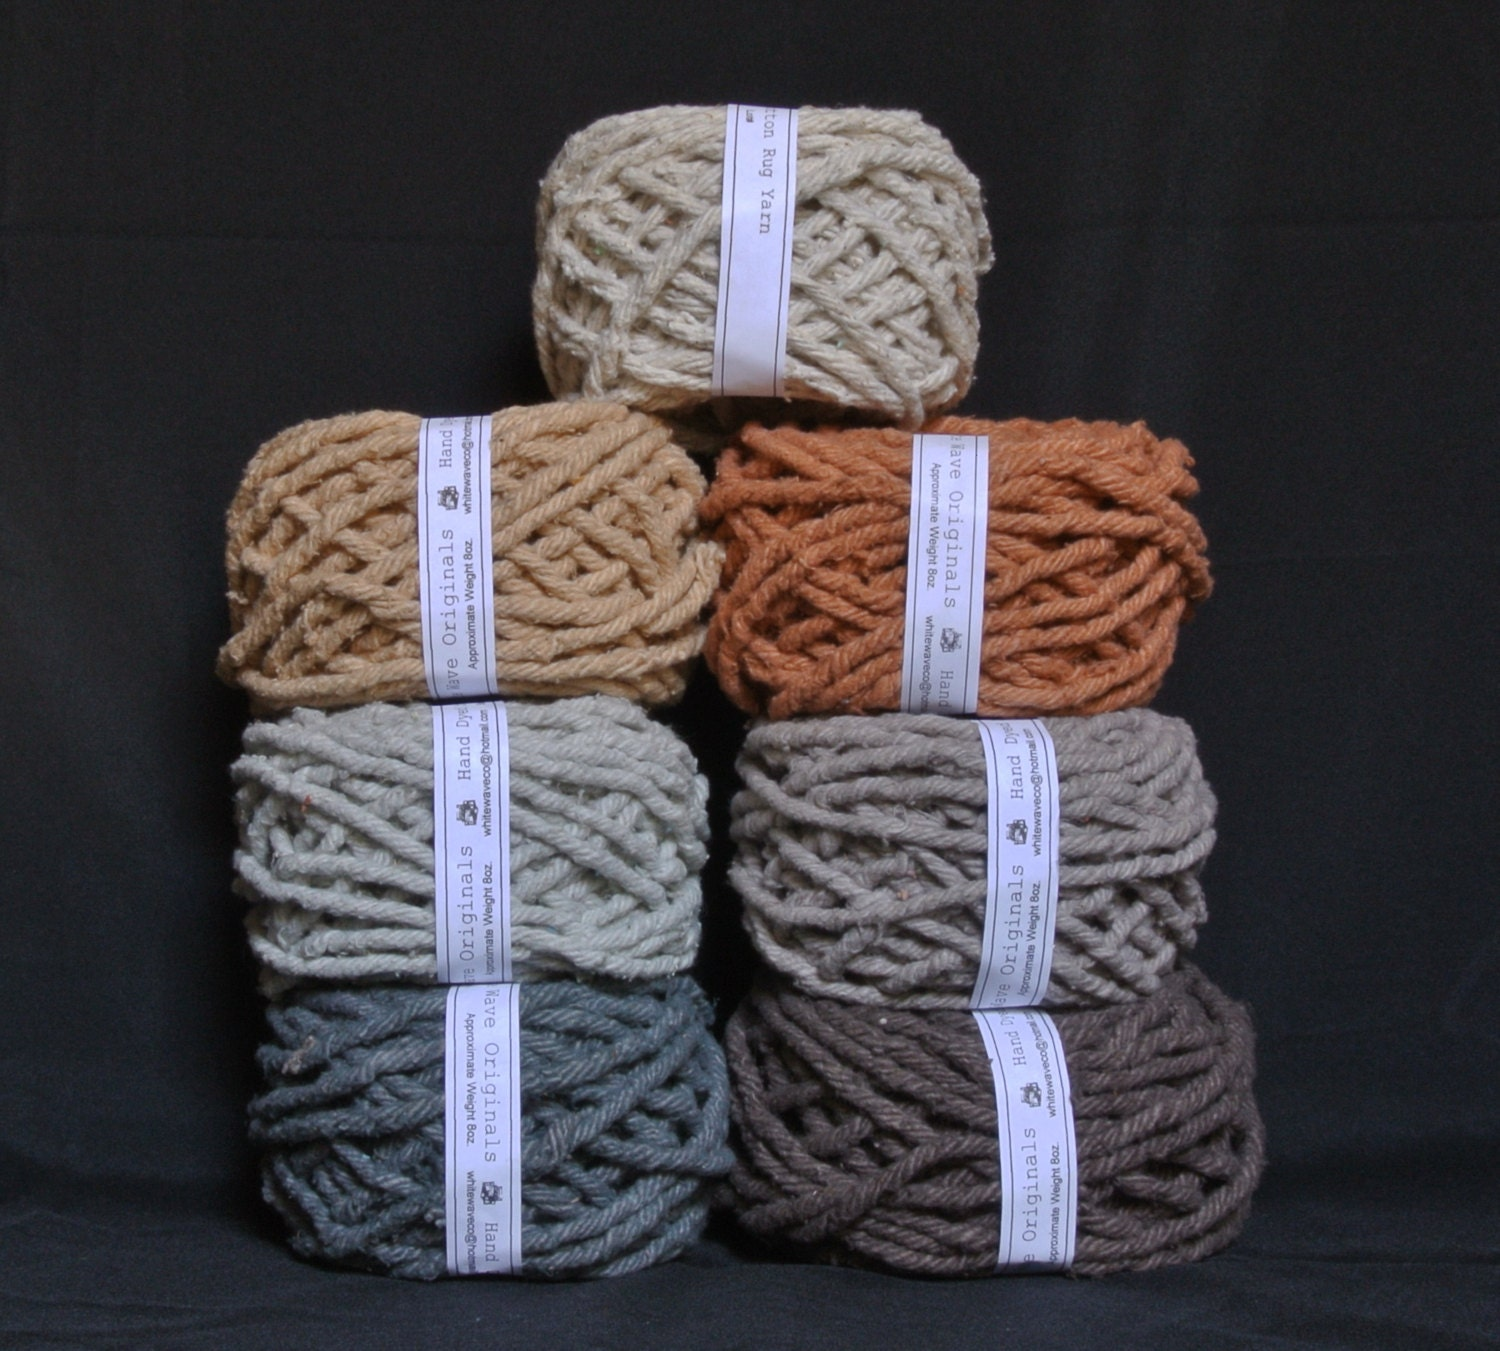 Hand Dyed Cotton Rug Yarn Colors Ecru Brown Mushroom Gray